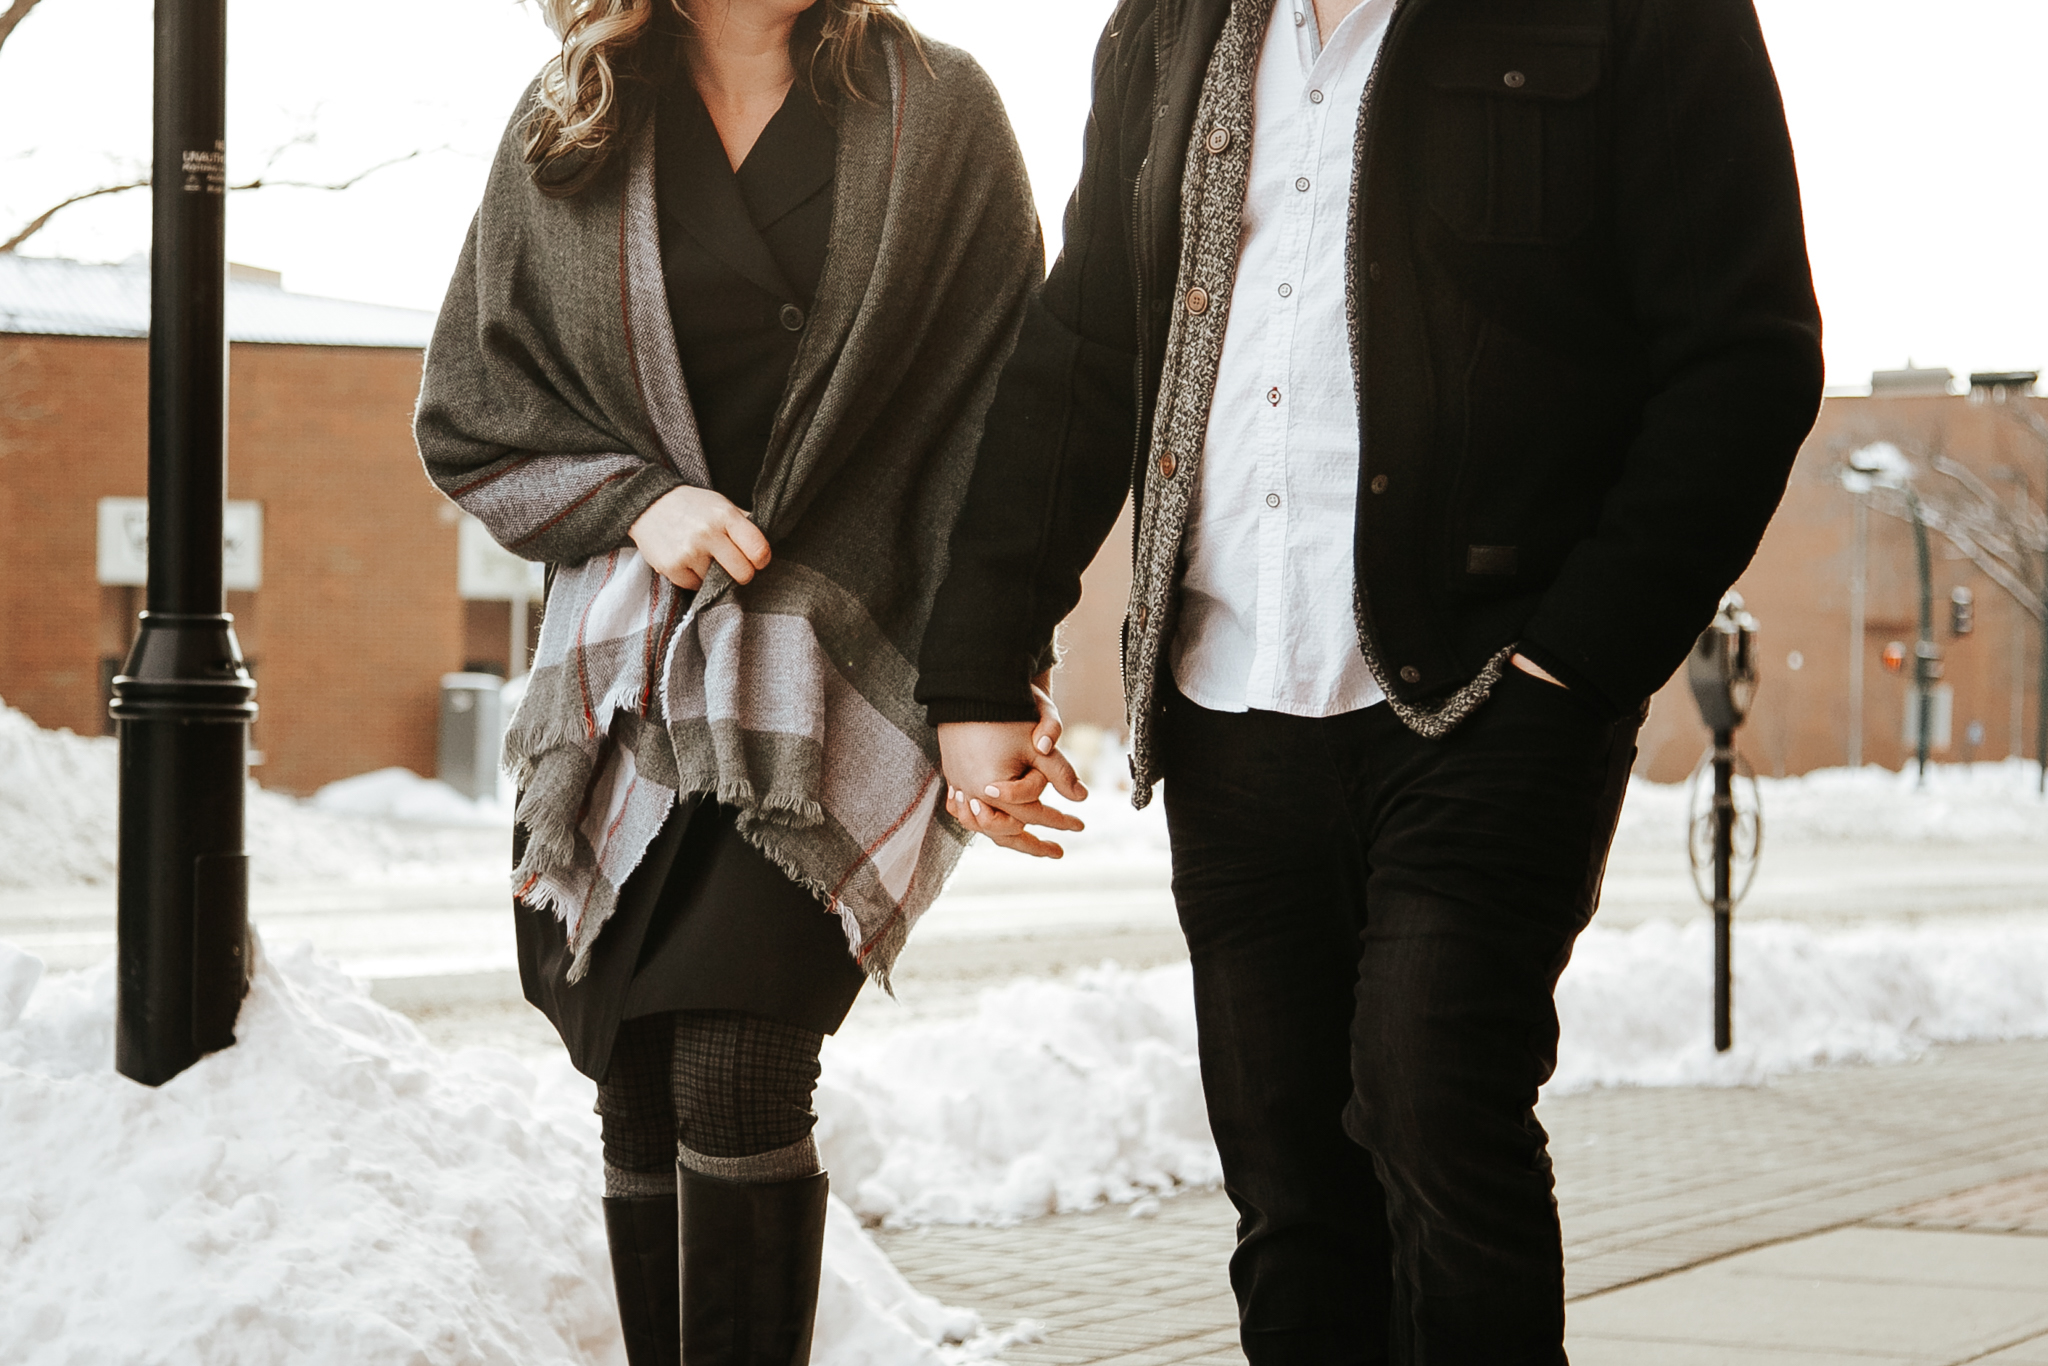 lethbridge-photographer-love-and-be-loved-photography-brandon-danielle-winter-engagement-downtown-yql-picture-image-photo-23.jpg